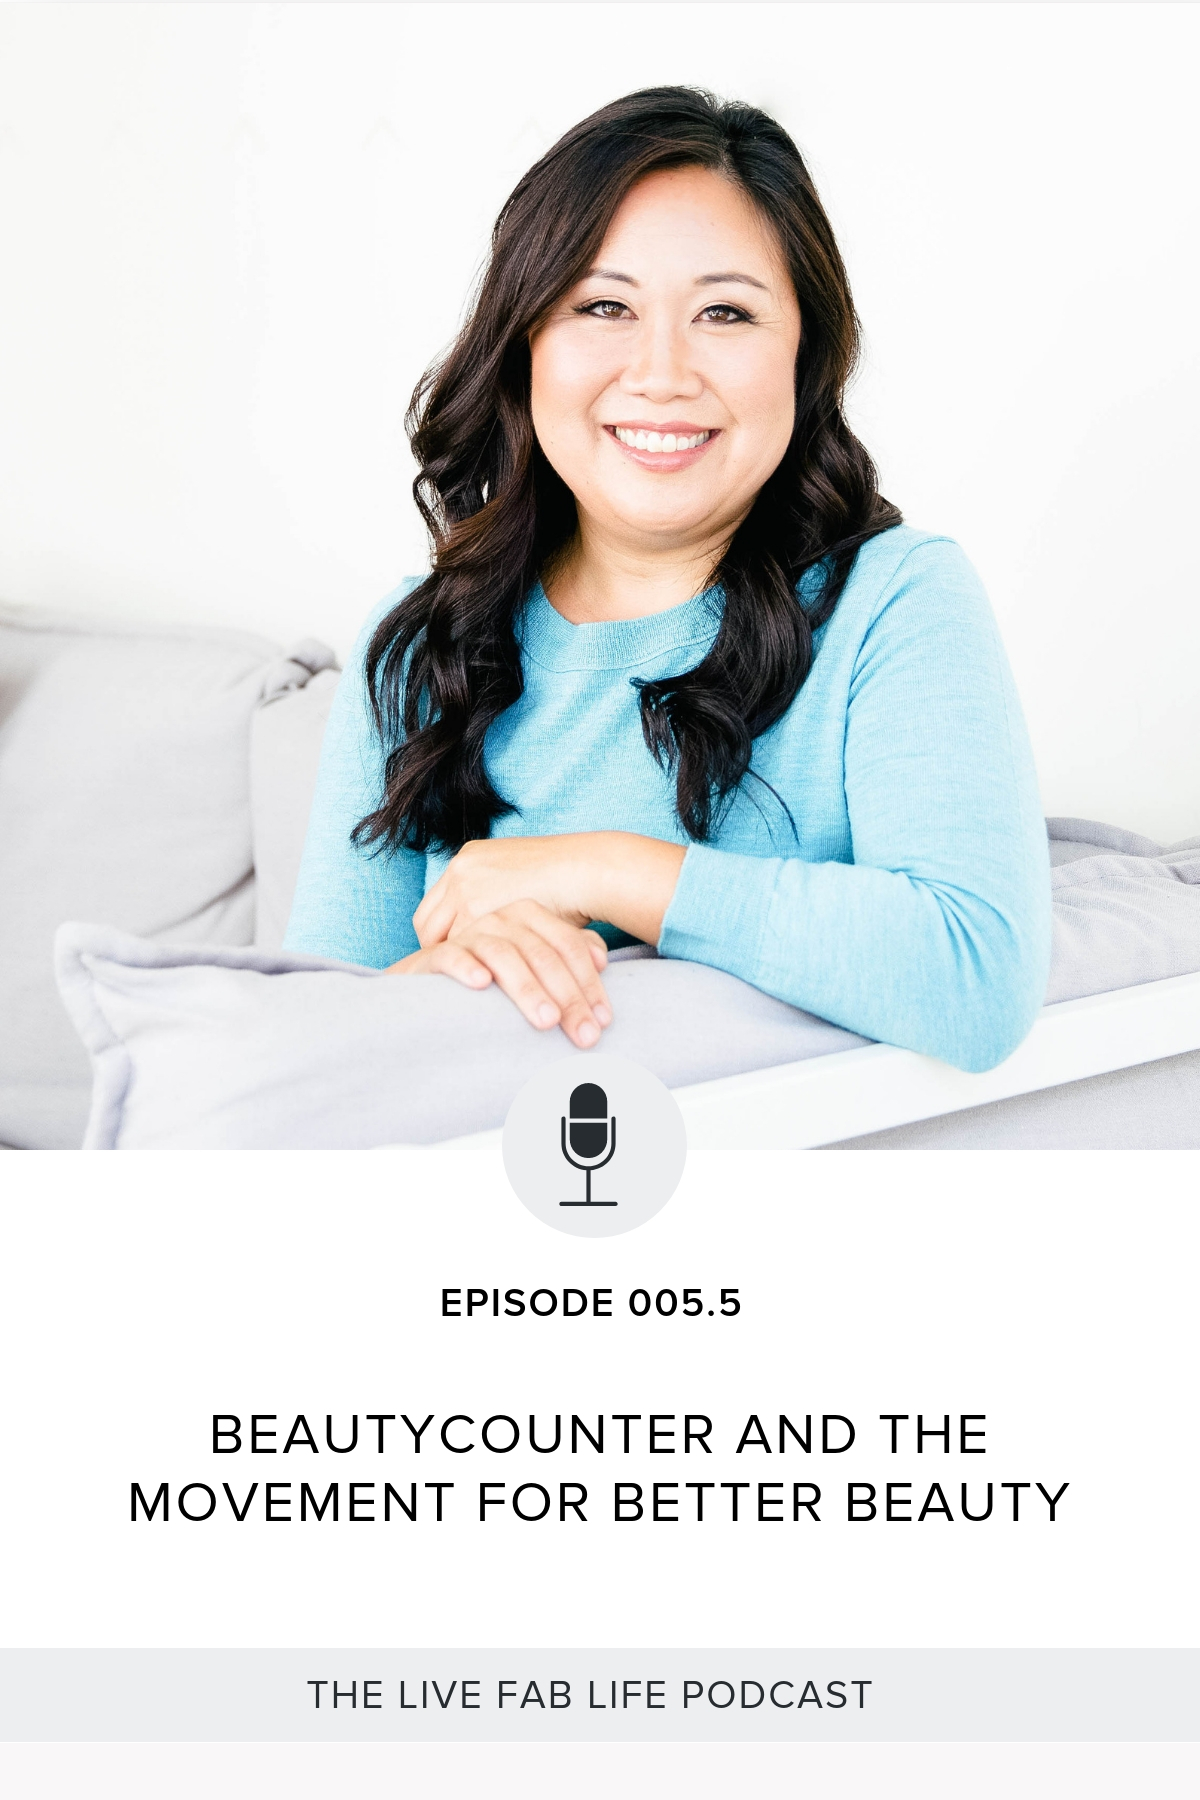 Bonus Episode 005.5: Beautycounter and the Movement for Better Beauty